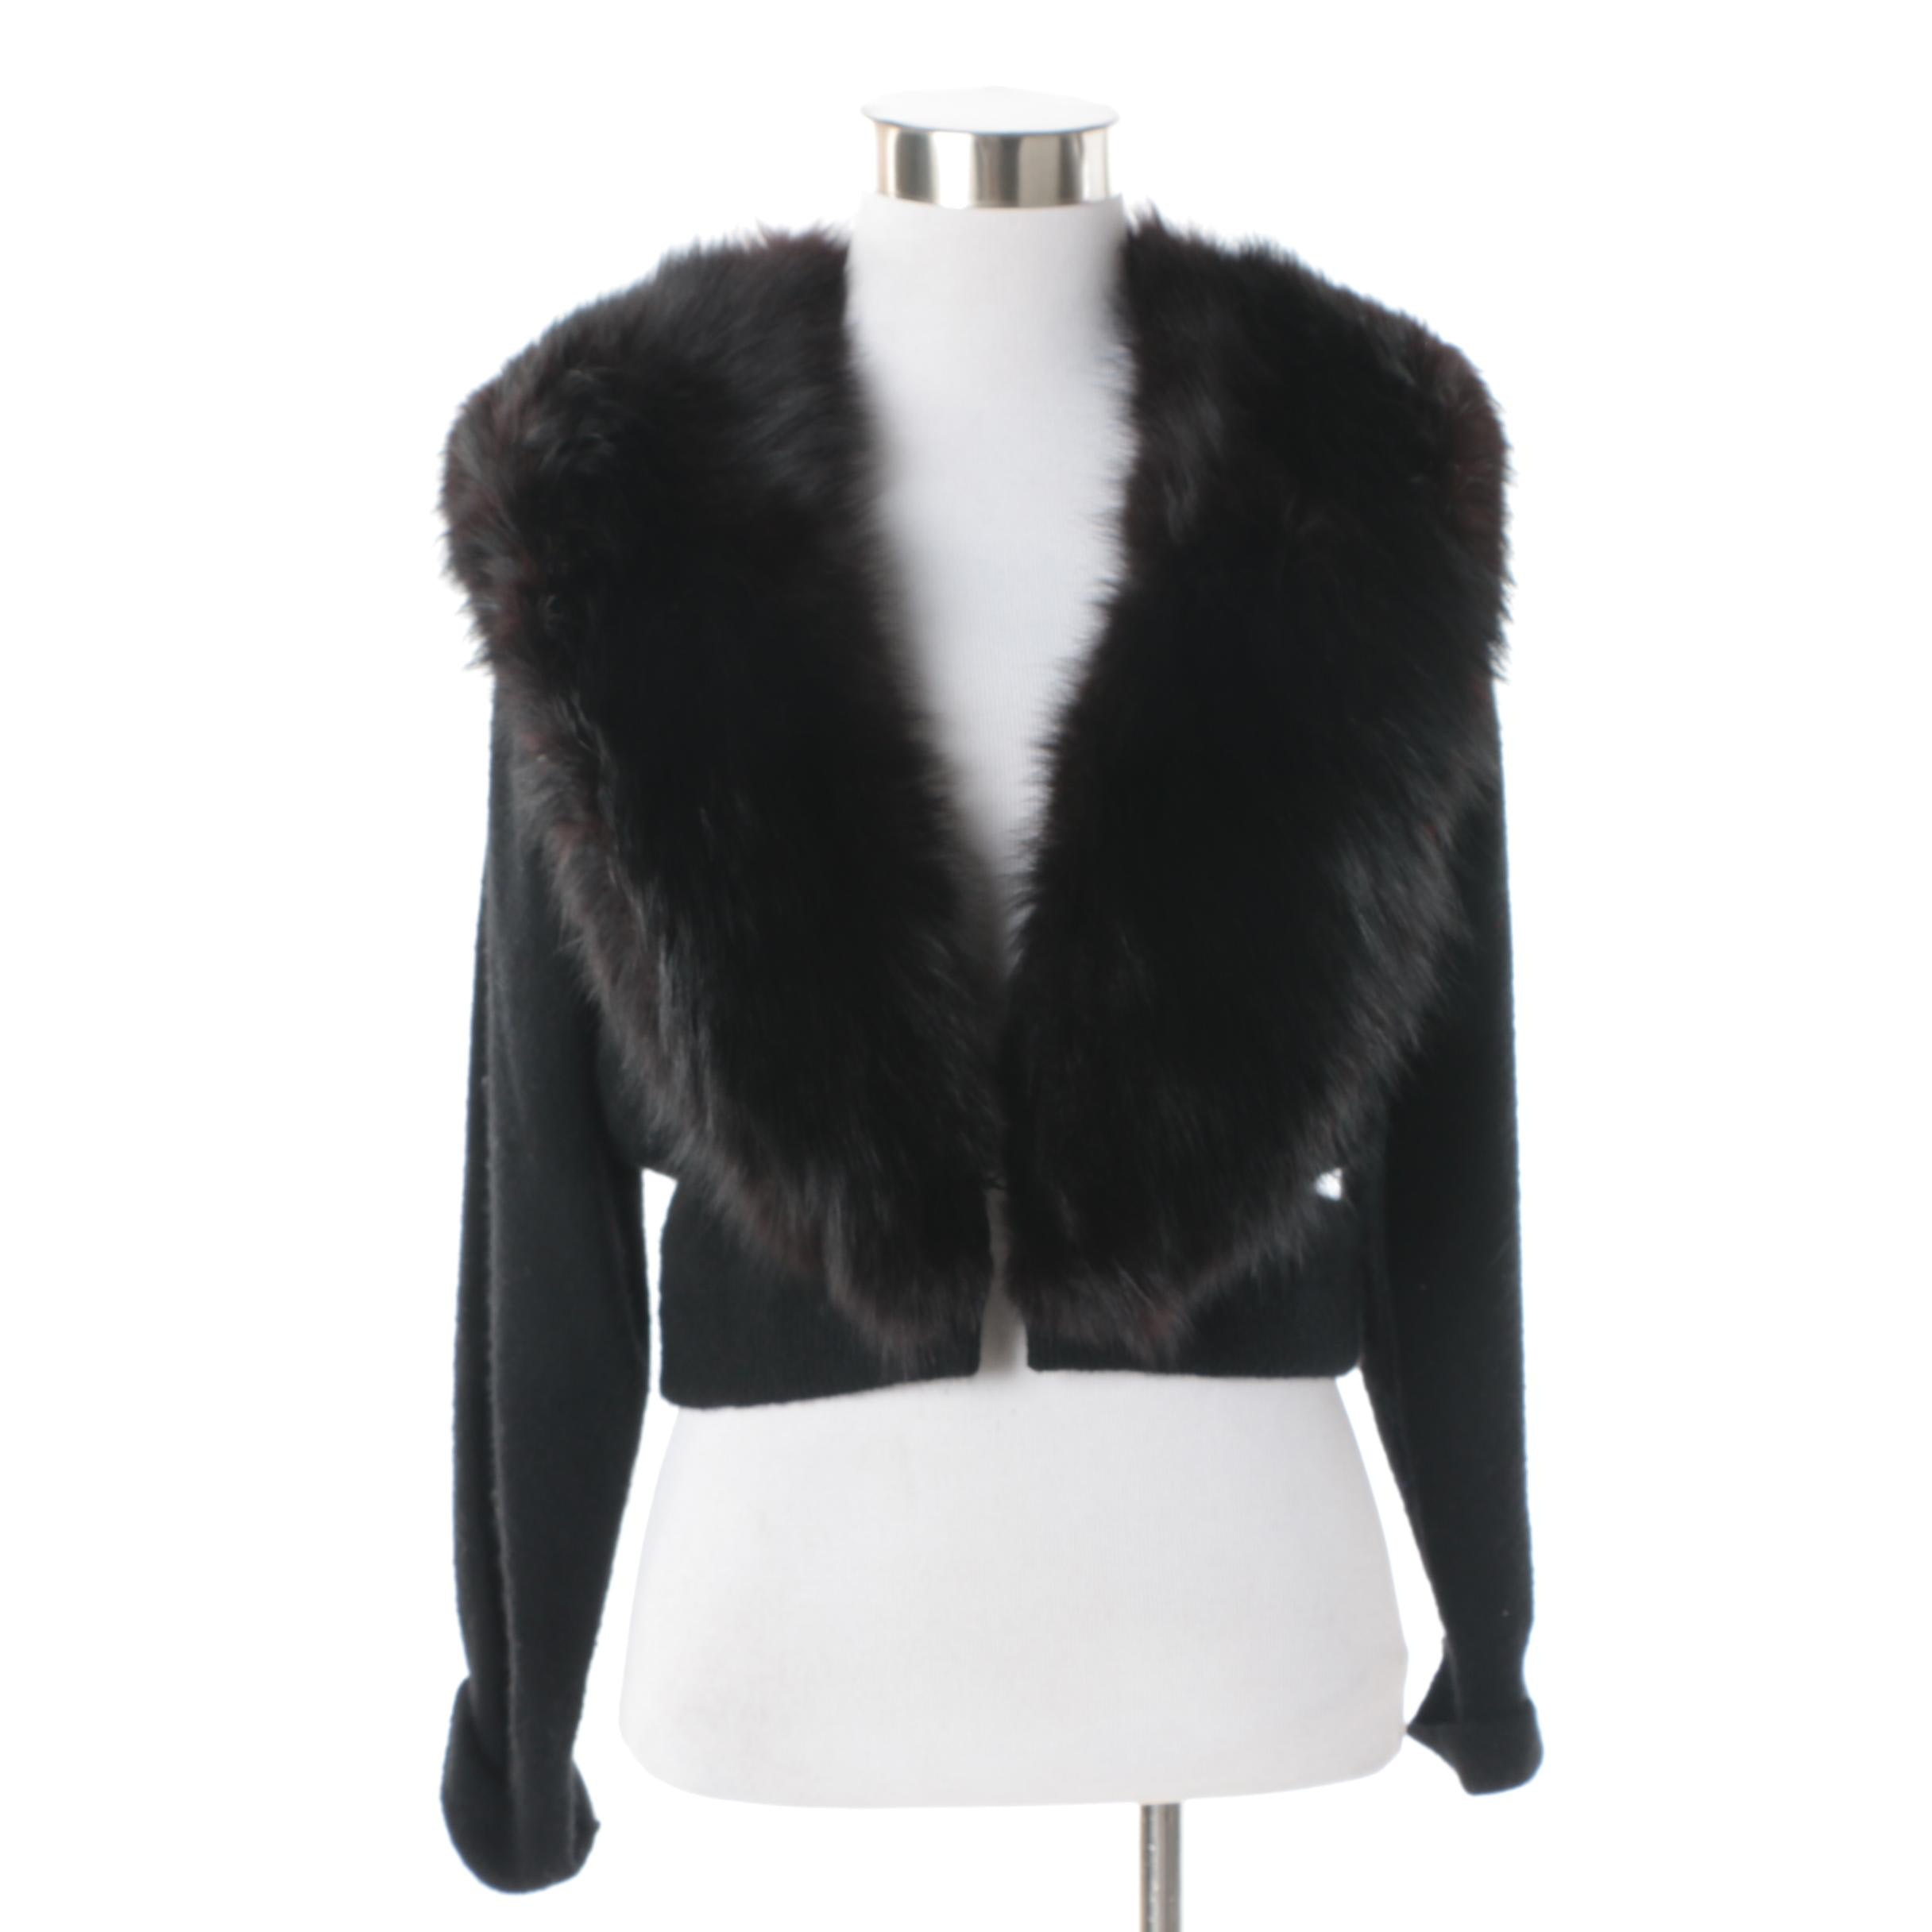 Women's Vintage Black Cashmere Cardigan with Removable Dyed Fox Fur Collar